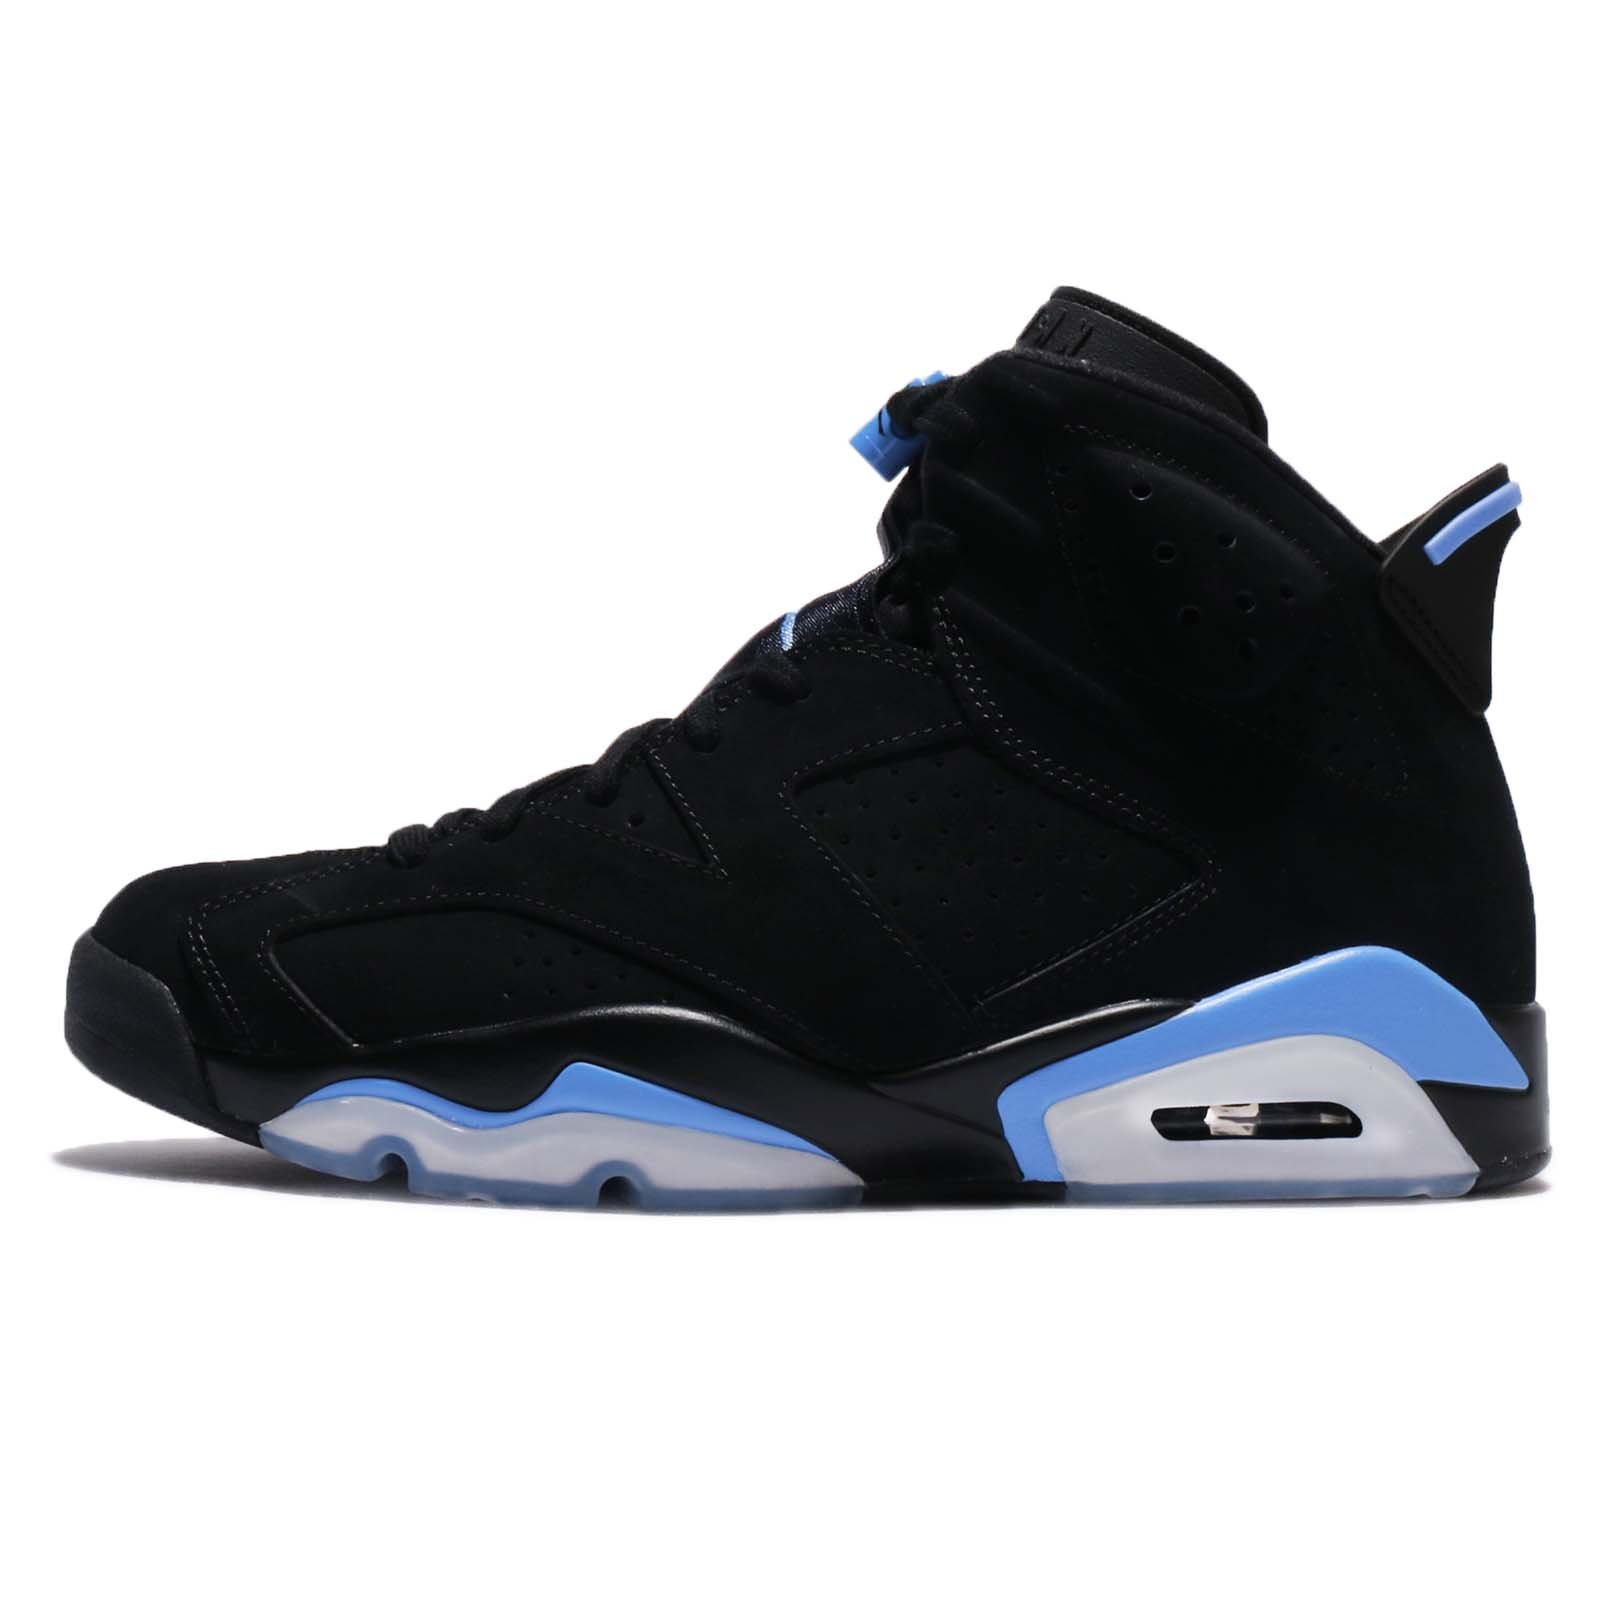 Jordan Retro 6'' UNC Black/University Blue (9.5 D(M) US) by Jordan